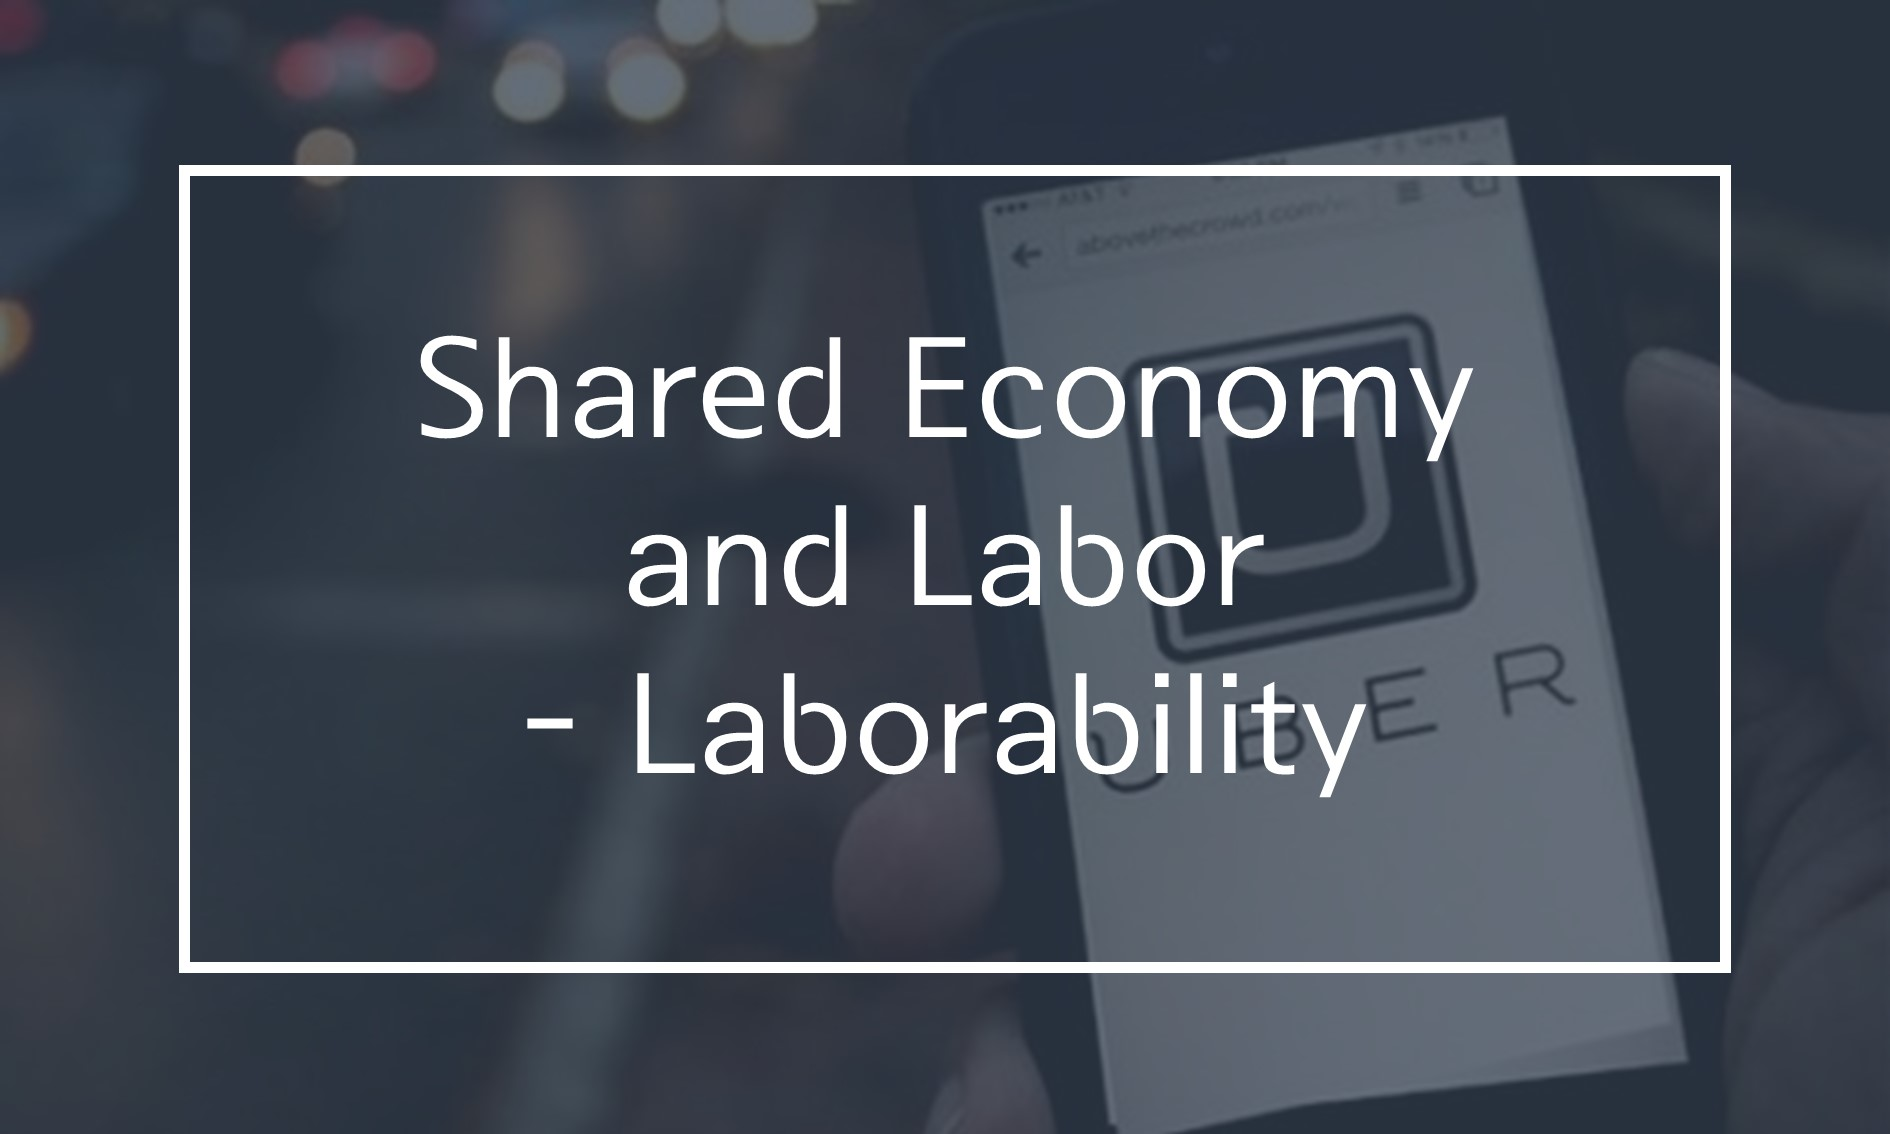 [Resources] Shared Economy and Labor - Laborability